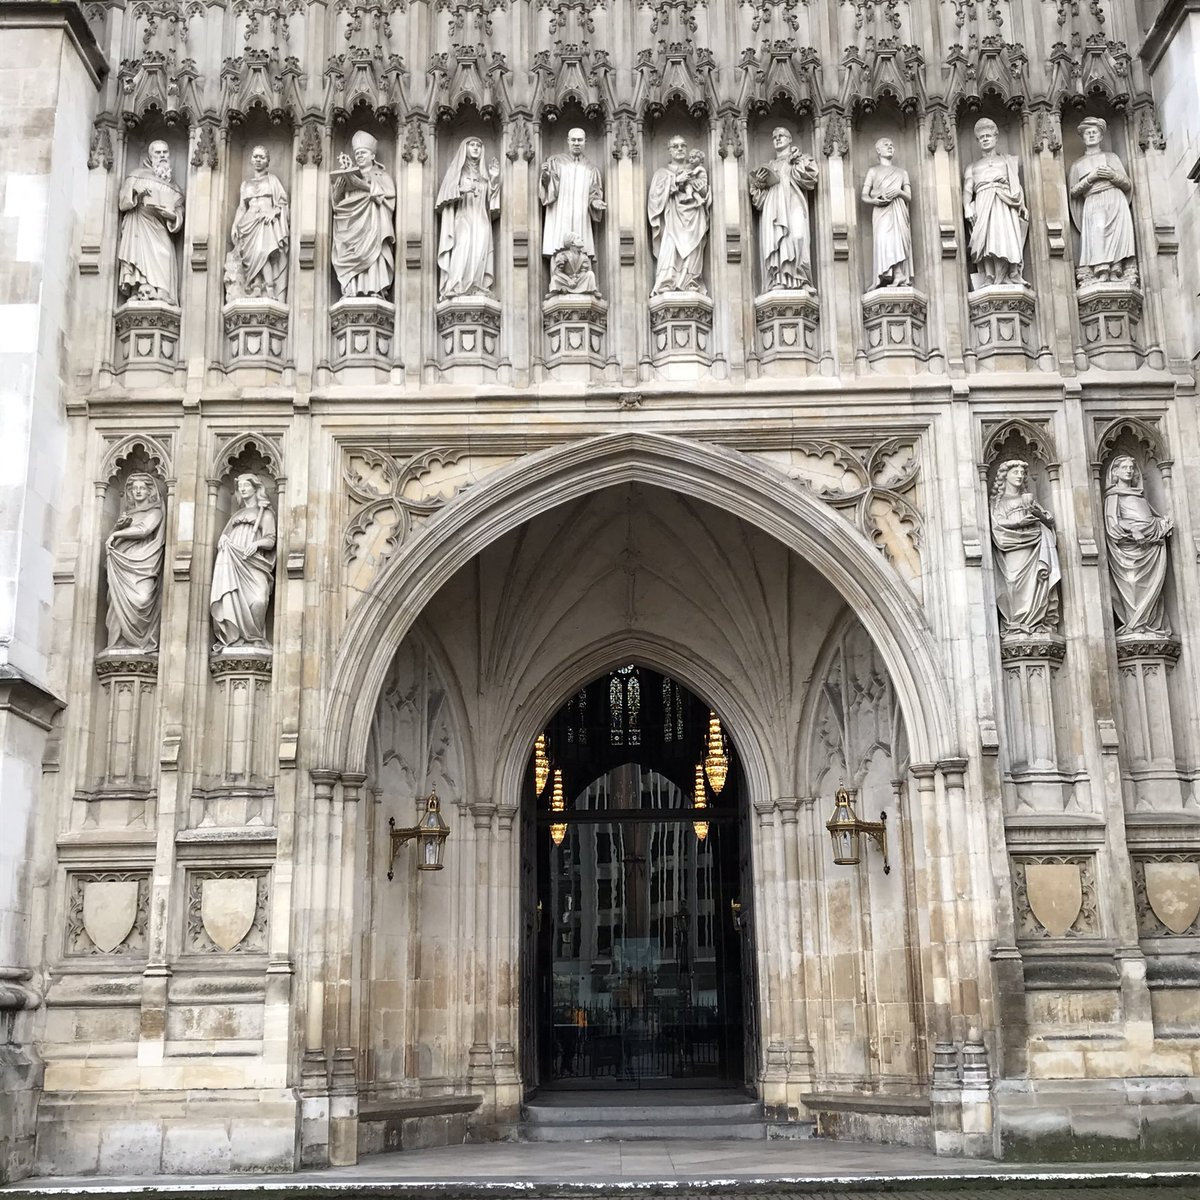 As our country backslides into racism and demagoguery, Martin Luther King stands above the entrance to Westminster Abbey. At least one of our countries knows whom its heroes are.  #MLK #WestminsterAbbey #London #UK #WinterVacationpic.twitter.com/9kTA7ygUDi